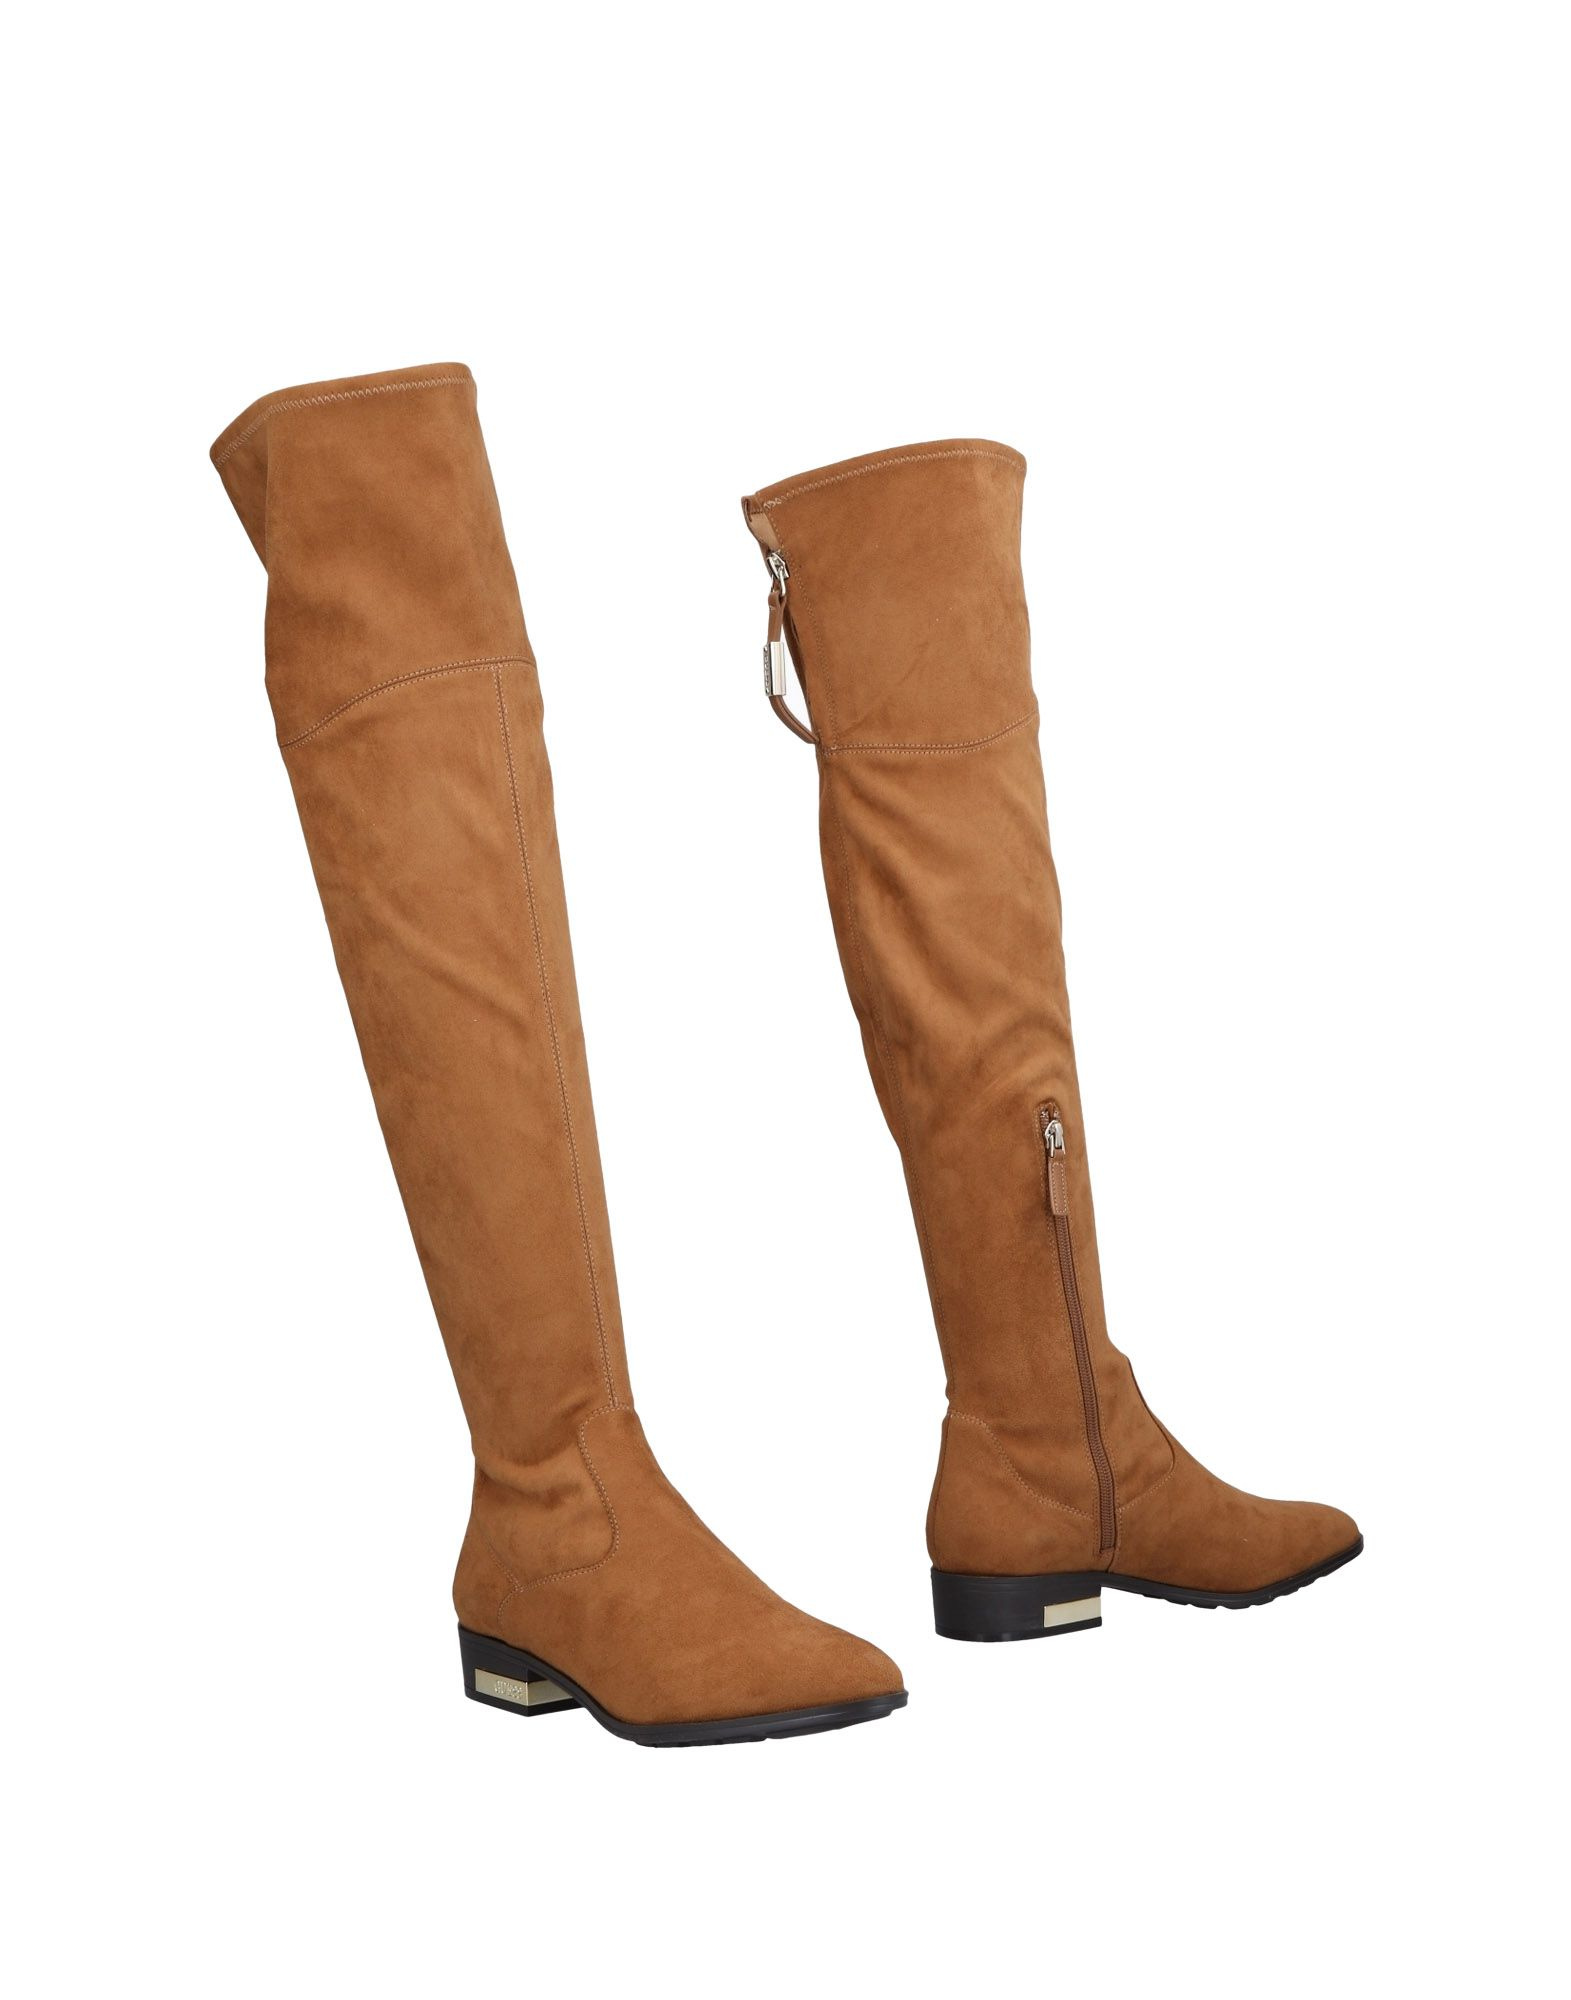 Guess Boots  - Women Guess Boots online on  Boots Canada - 11474687NO 9f45ab